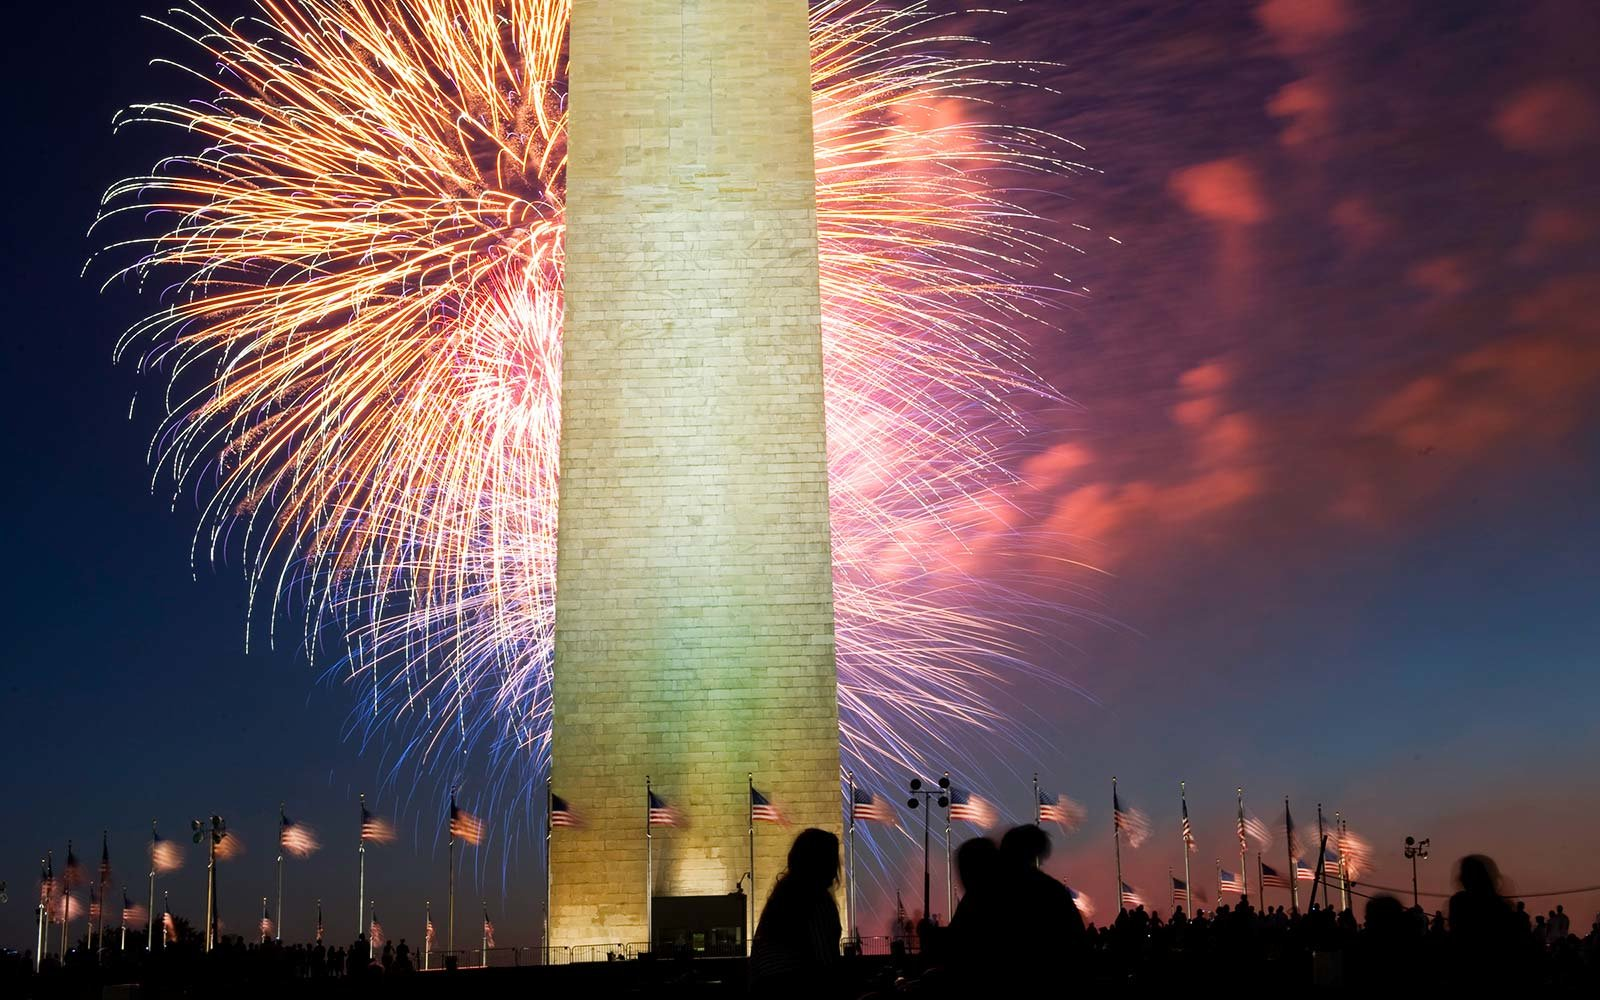 Fourth of July Independence Day Celebrations National Mall Washington monument Washington, DC fireworks